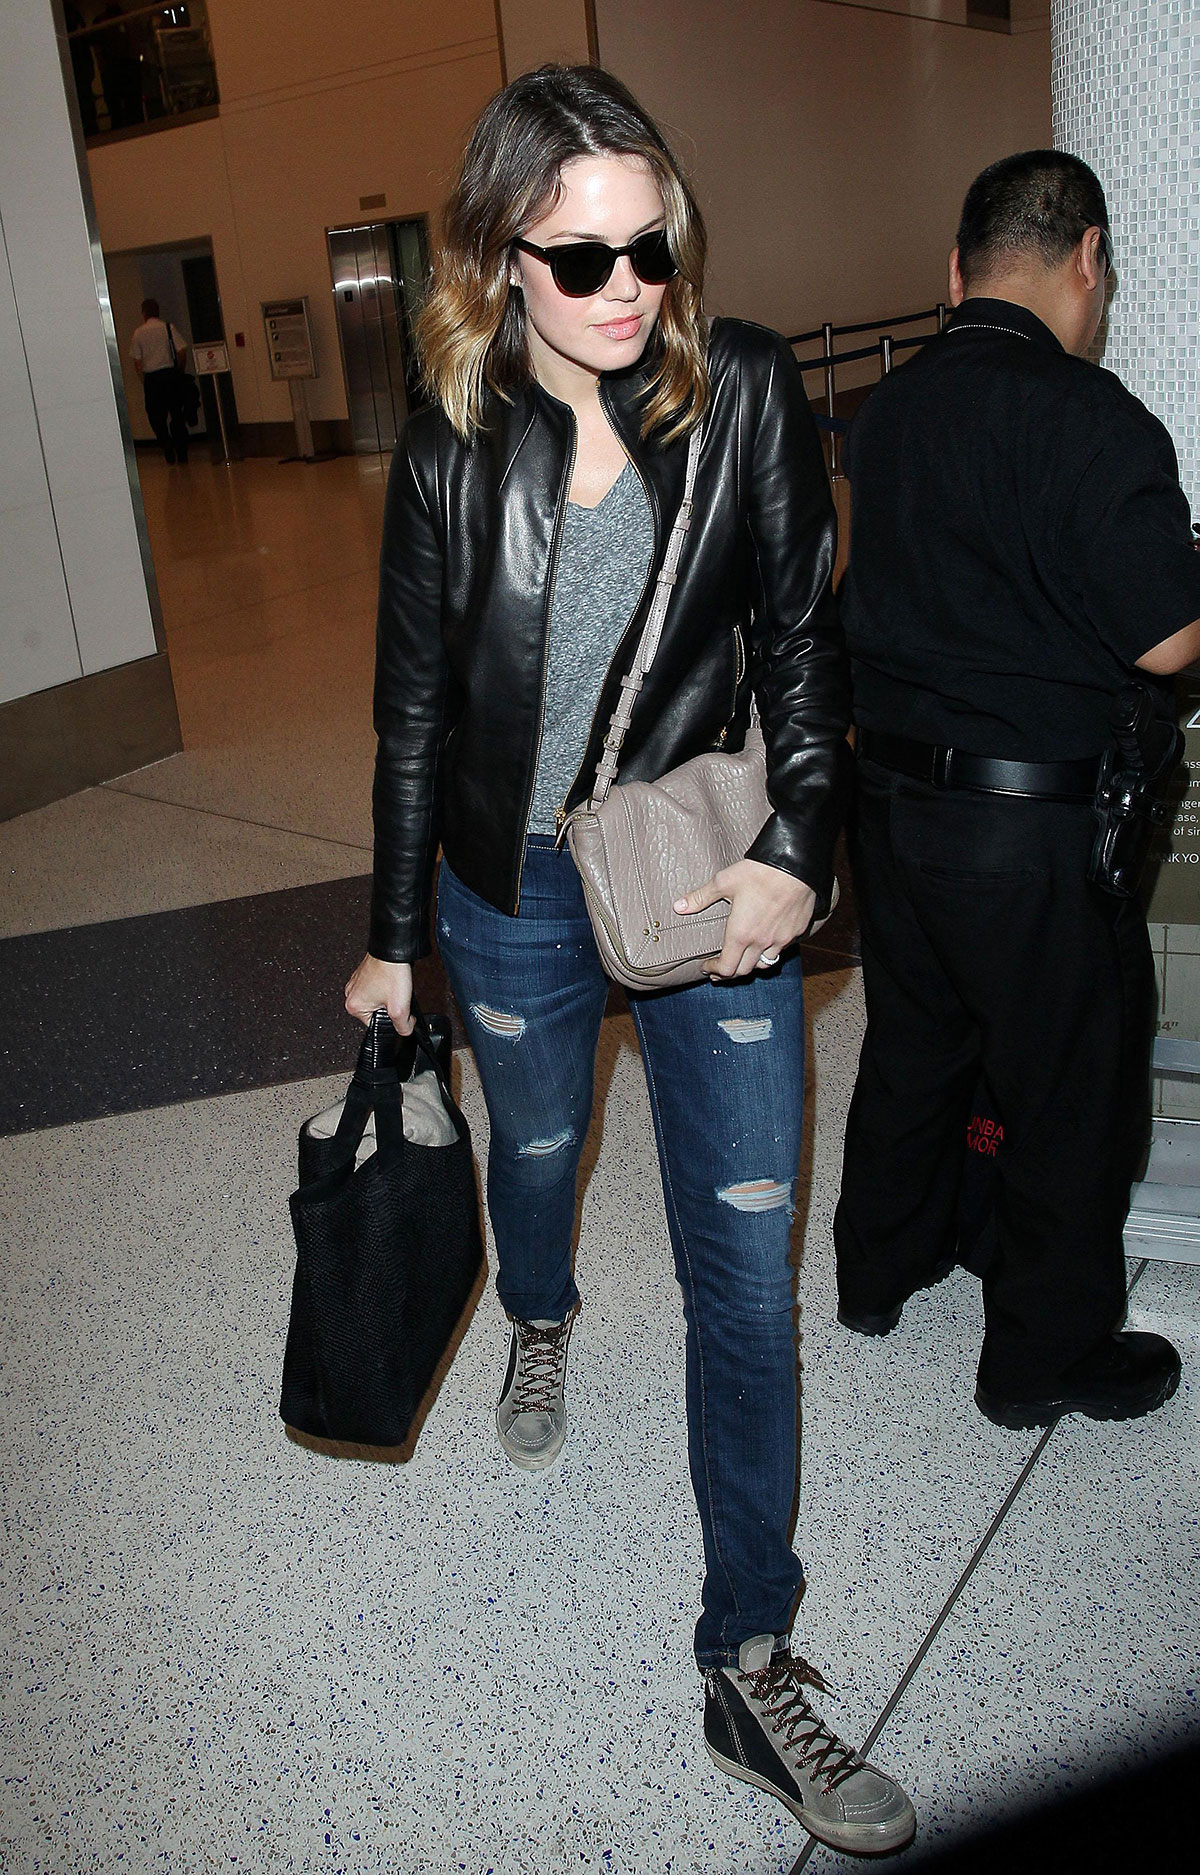 Mandy Moore arrives at the Los Angeles International Airport